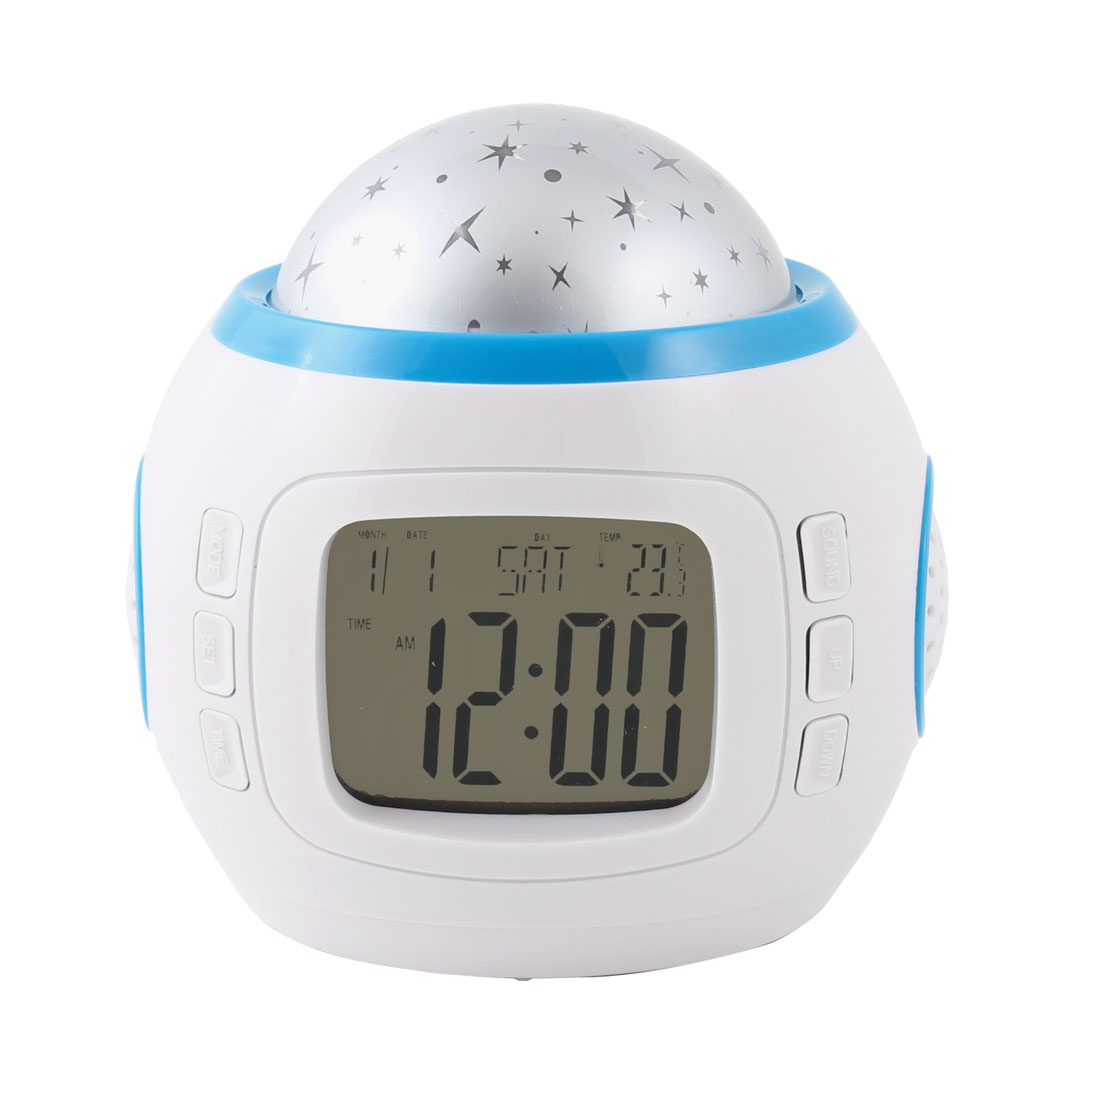 Star Projection Music Calendar Thermometer Alarm LED Clock Blue White